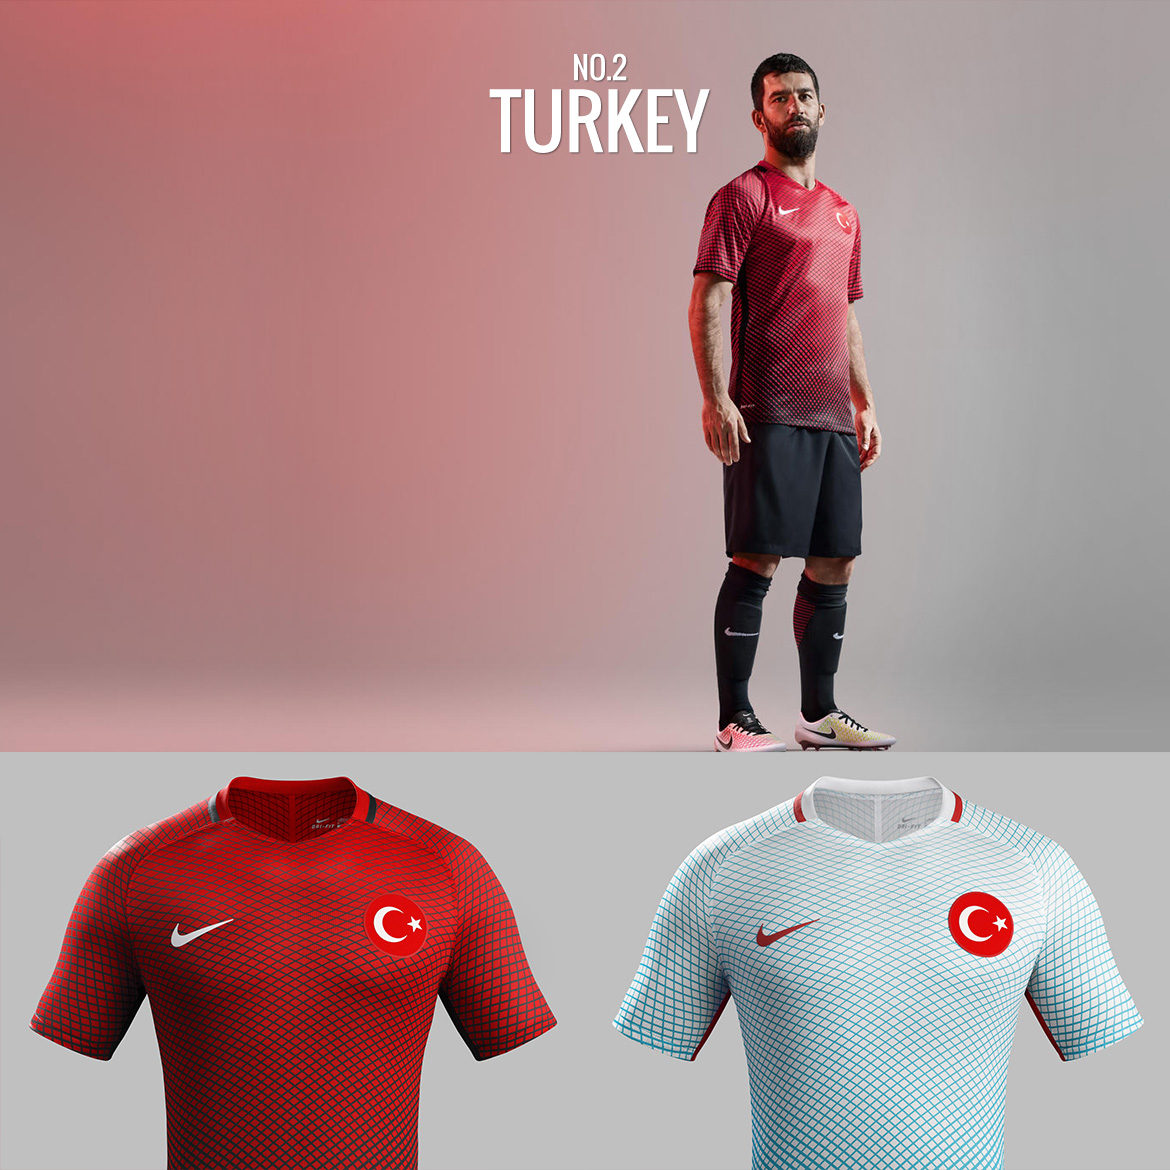 UEFA Euro 2016 - Turkey - Football Kit Design